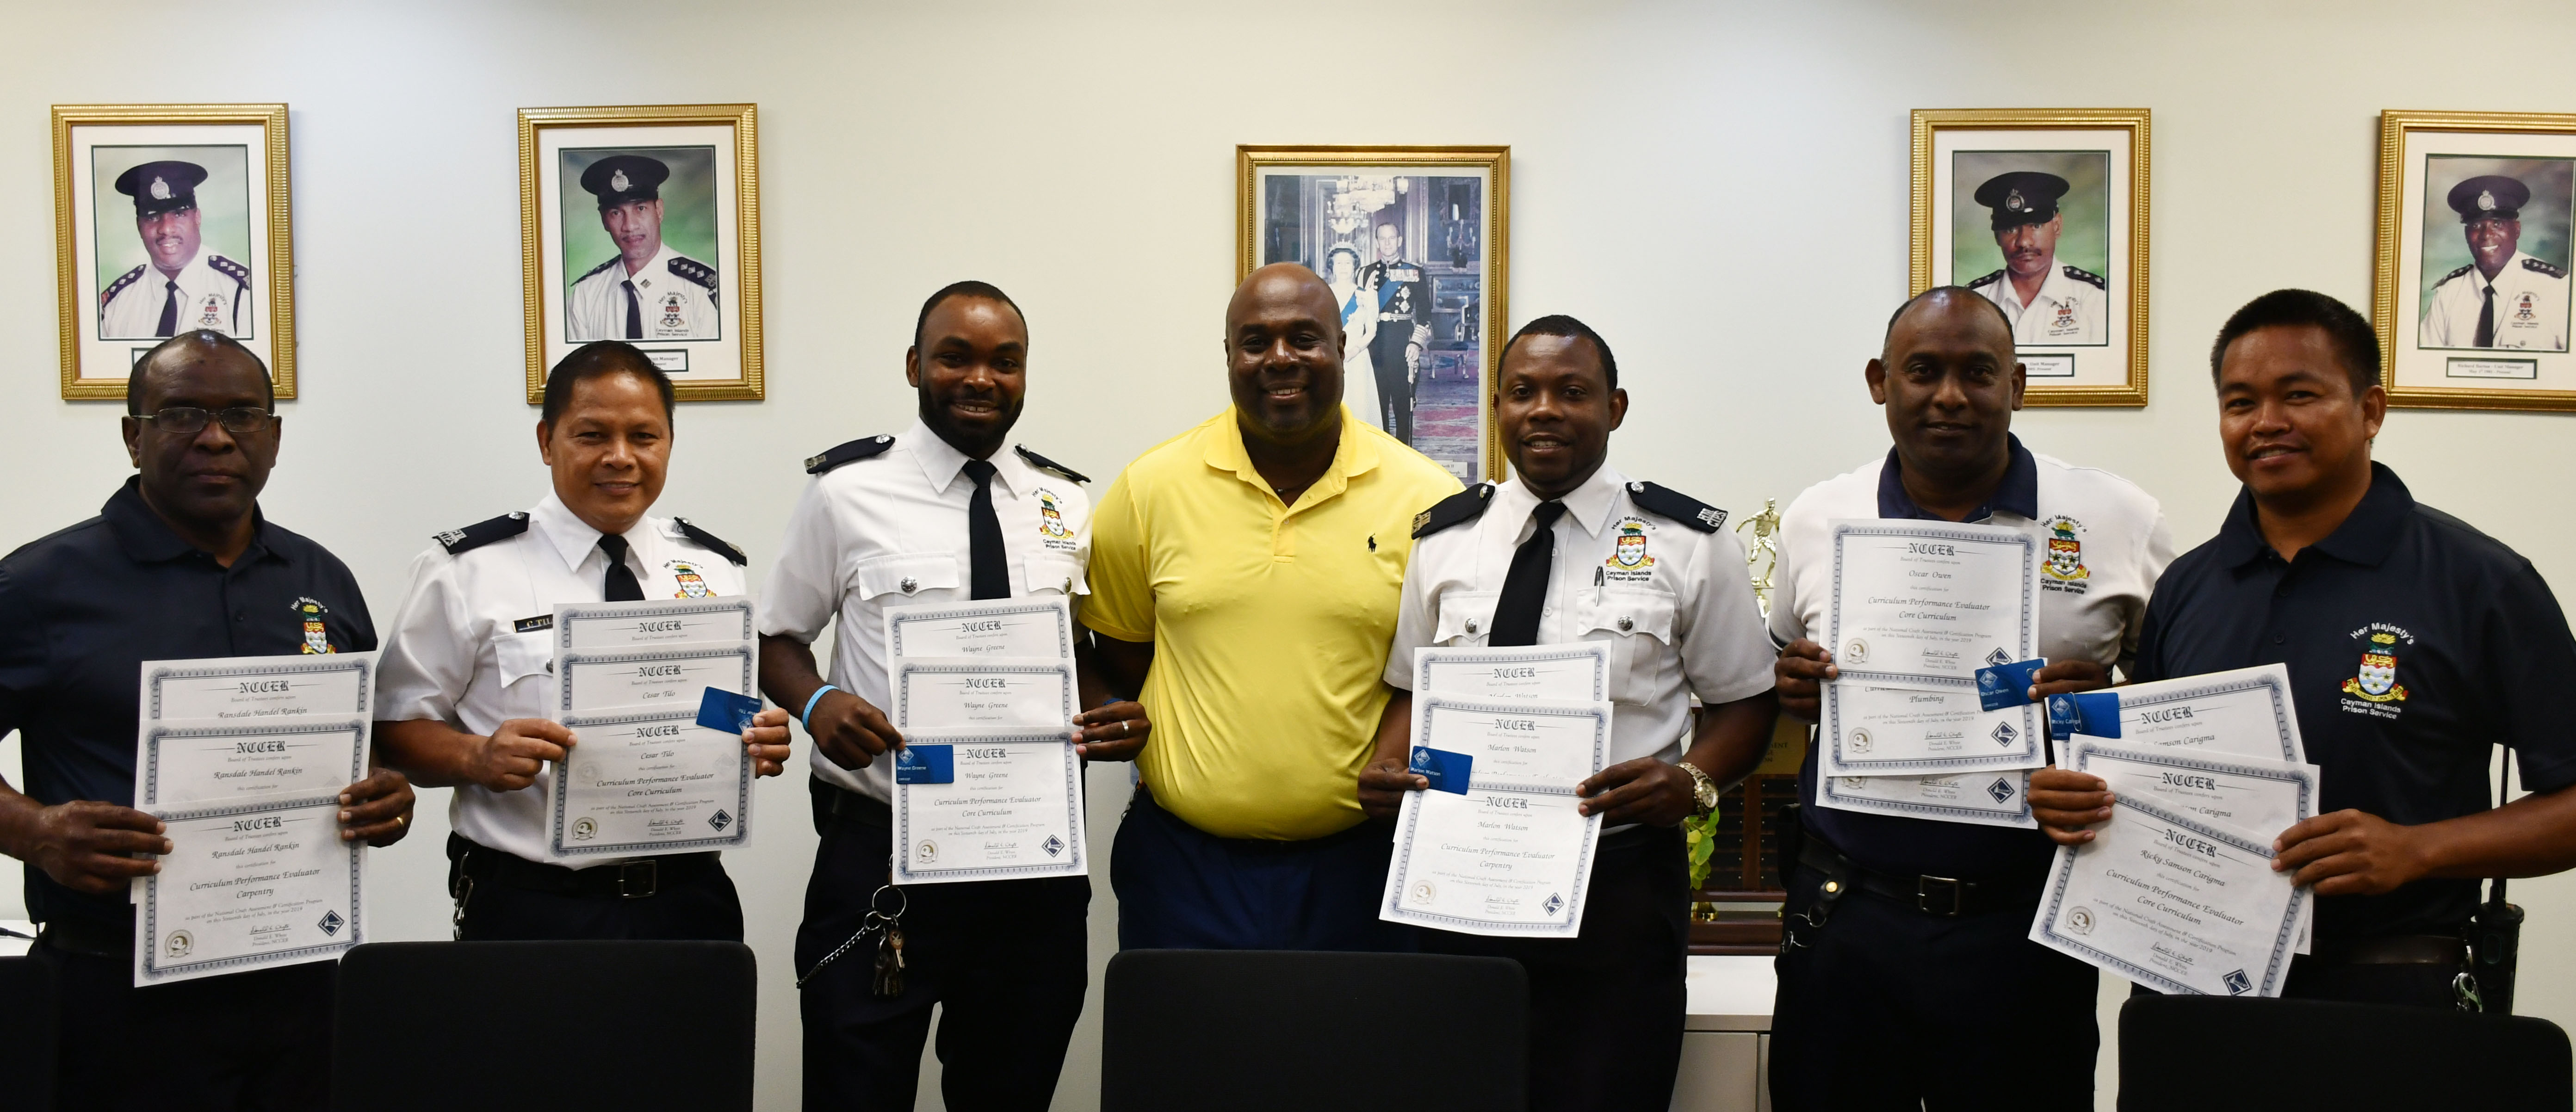 Prison Officers Ransdale Rankin, Cesar Tilo, Wayne Greene, Marlon Watson, Oscar Owen, Ricky Carigma (left to right) receive their training accreditation certificates from Inspire Cayman's Director Michael Myles (centre in yellow).